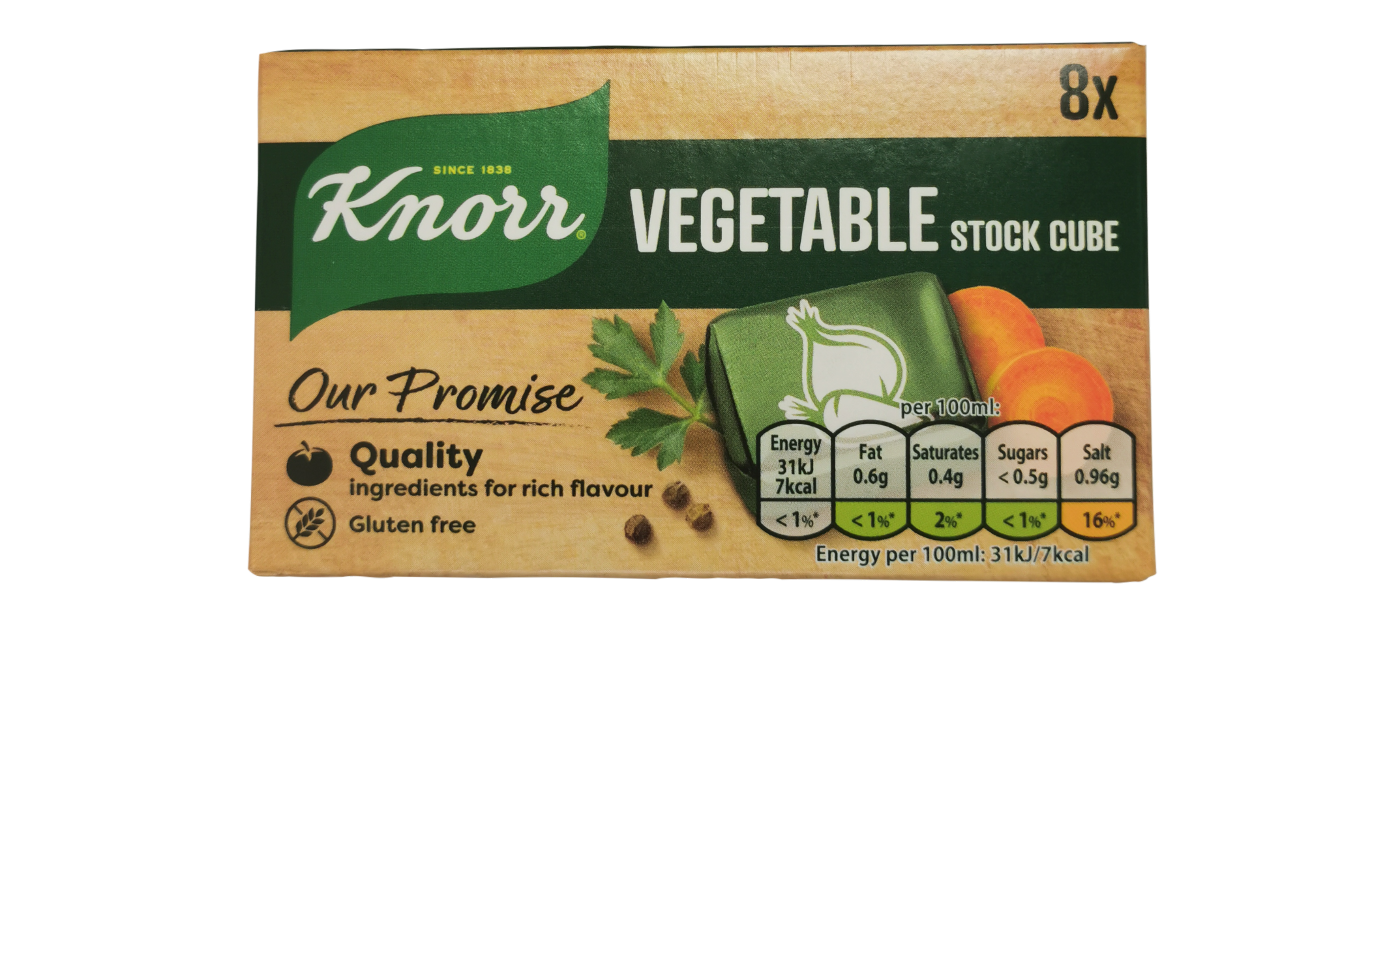 Knorr Vegetable Stock Cube